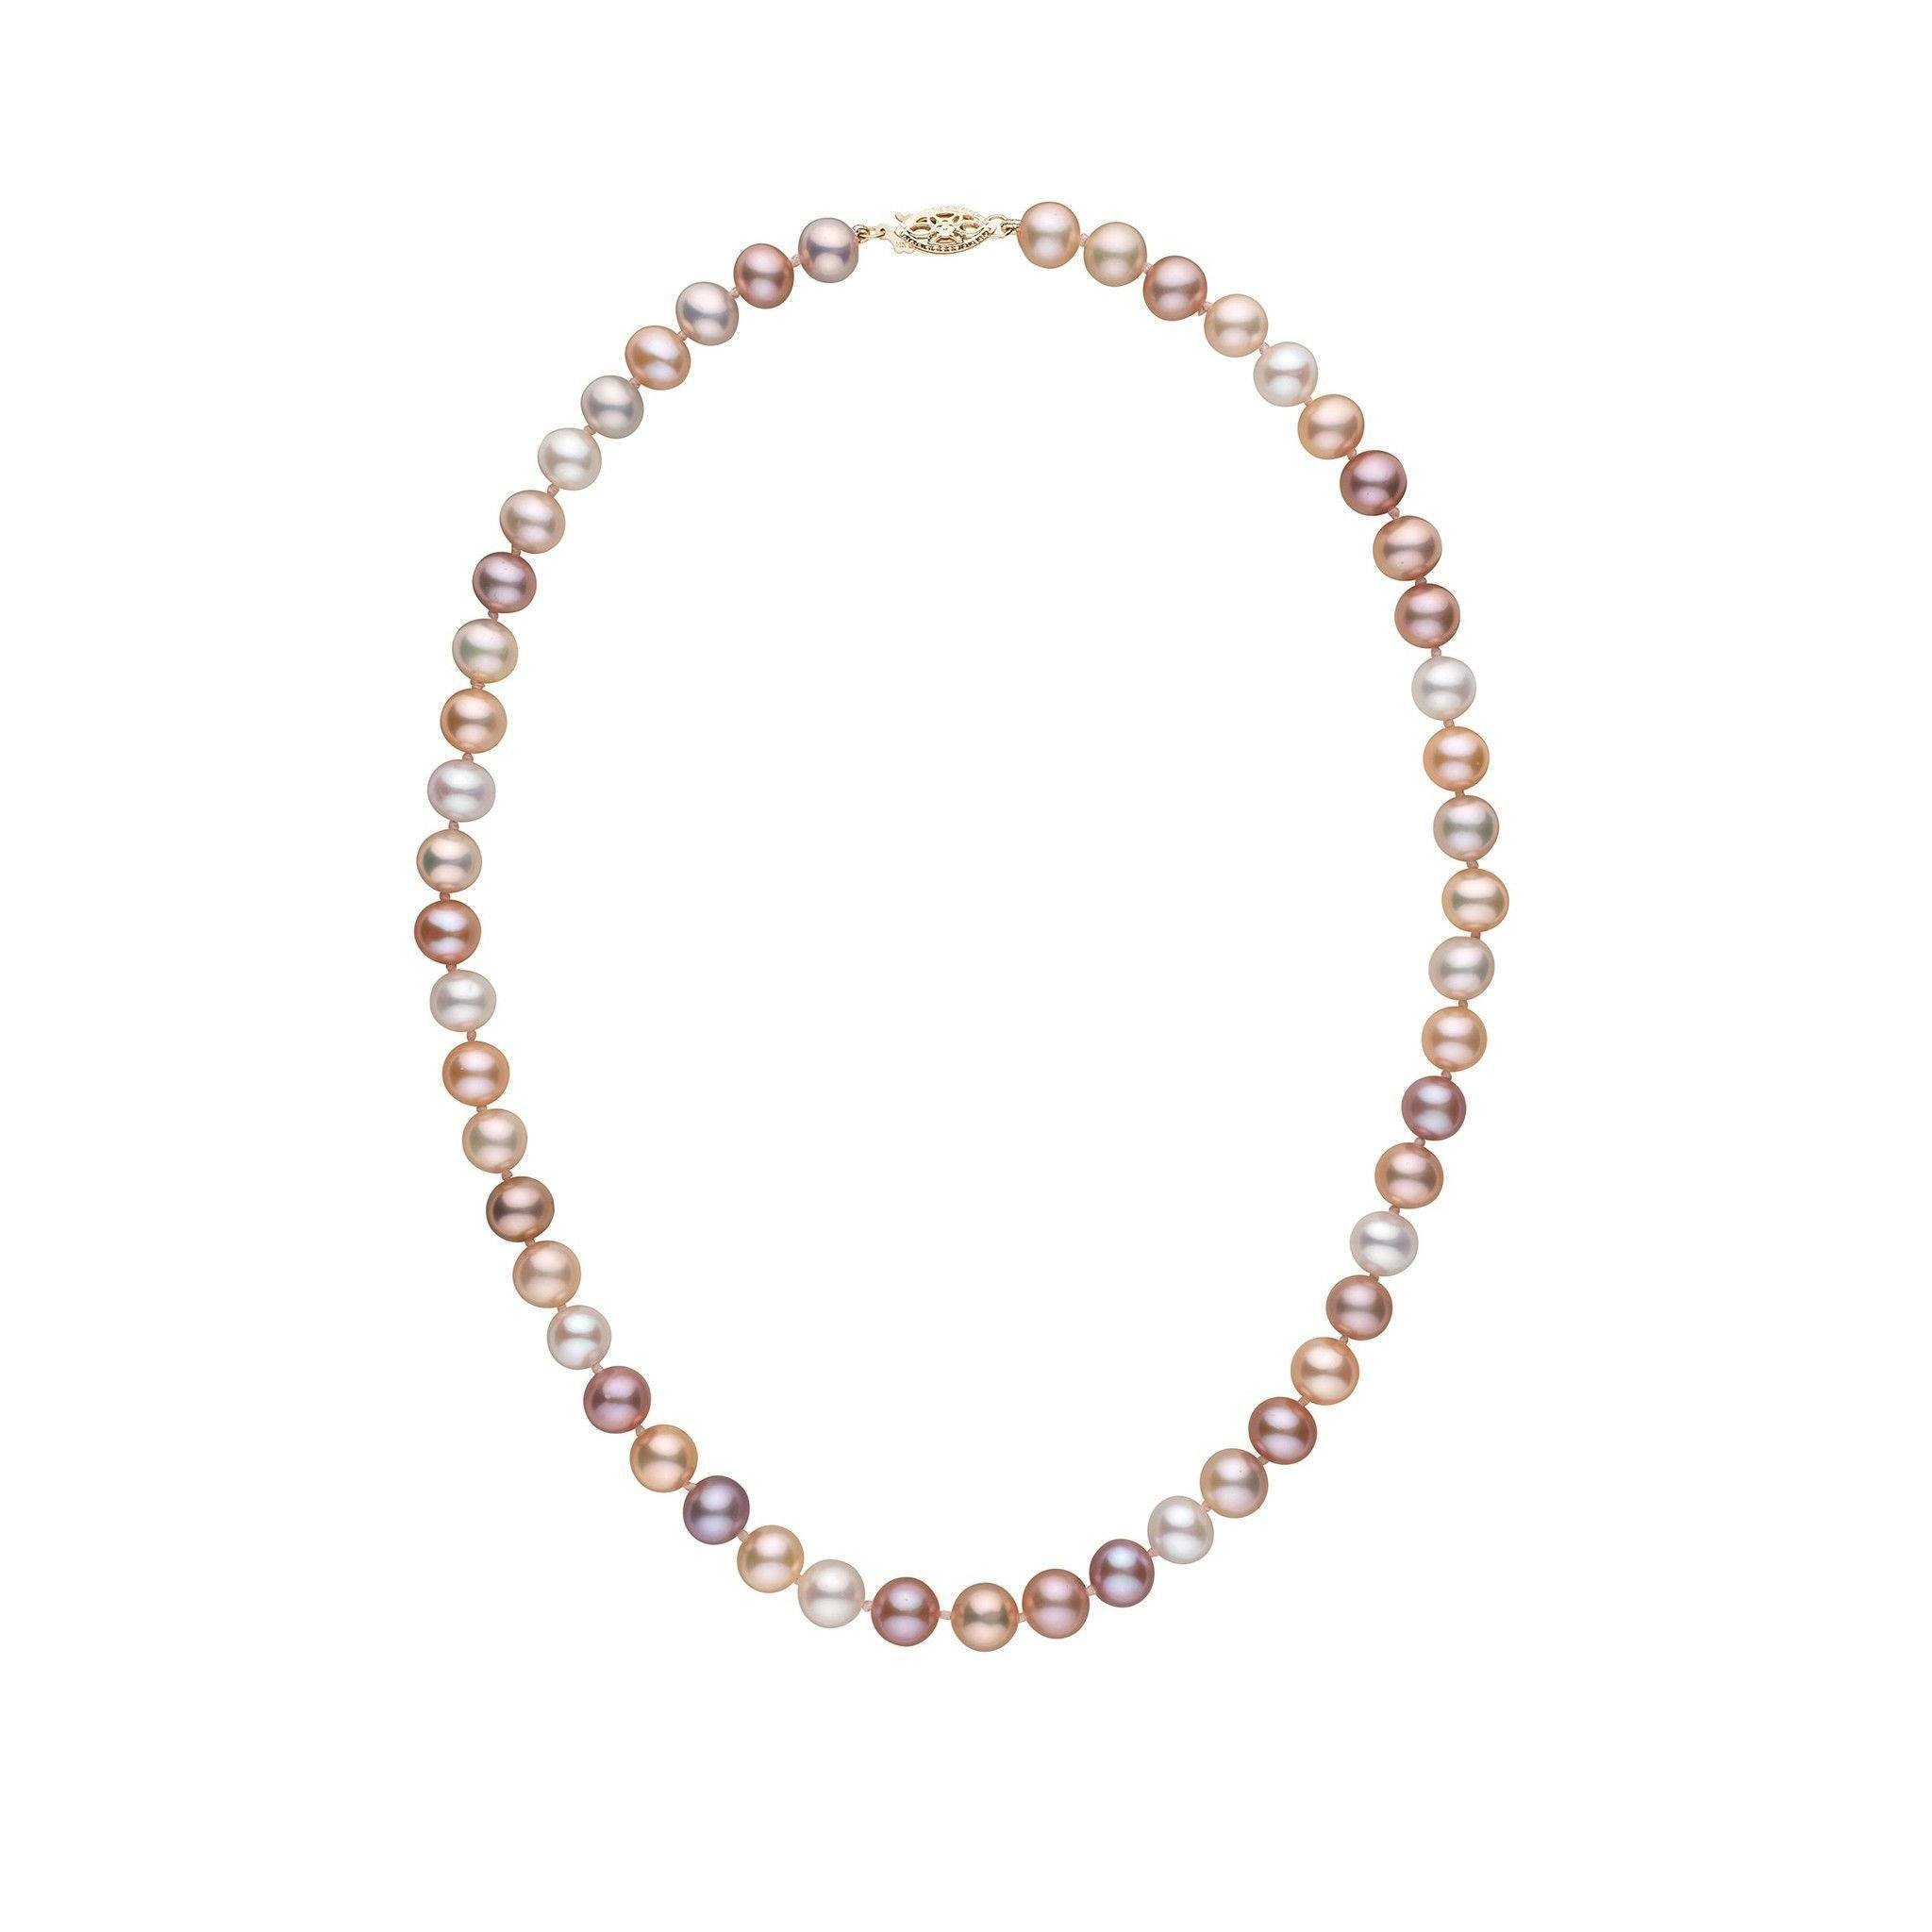 7.5-8.0 mm 16 Inch AA+ Multicolor Freshwater Pearl Necklace